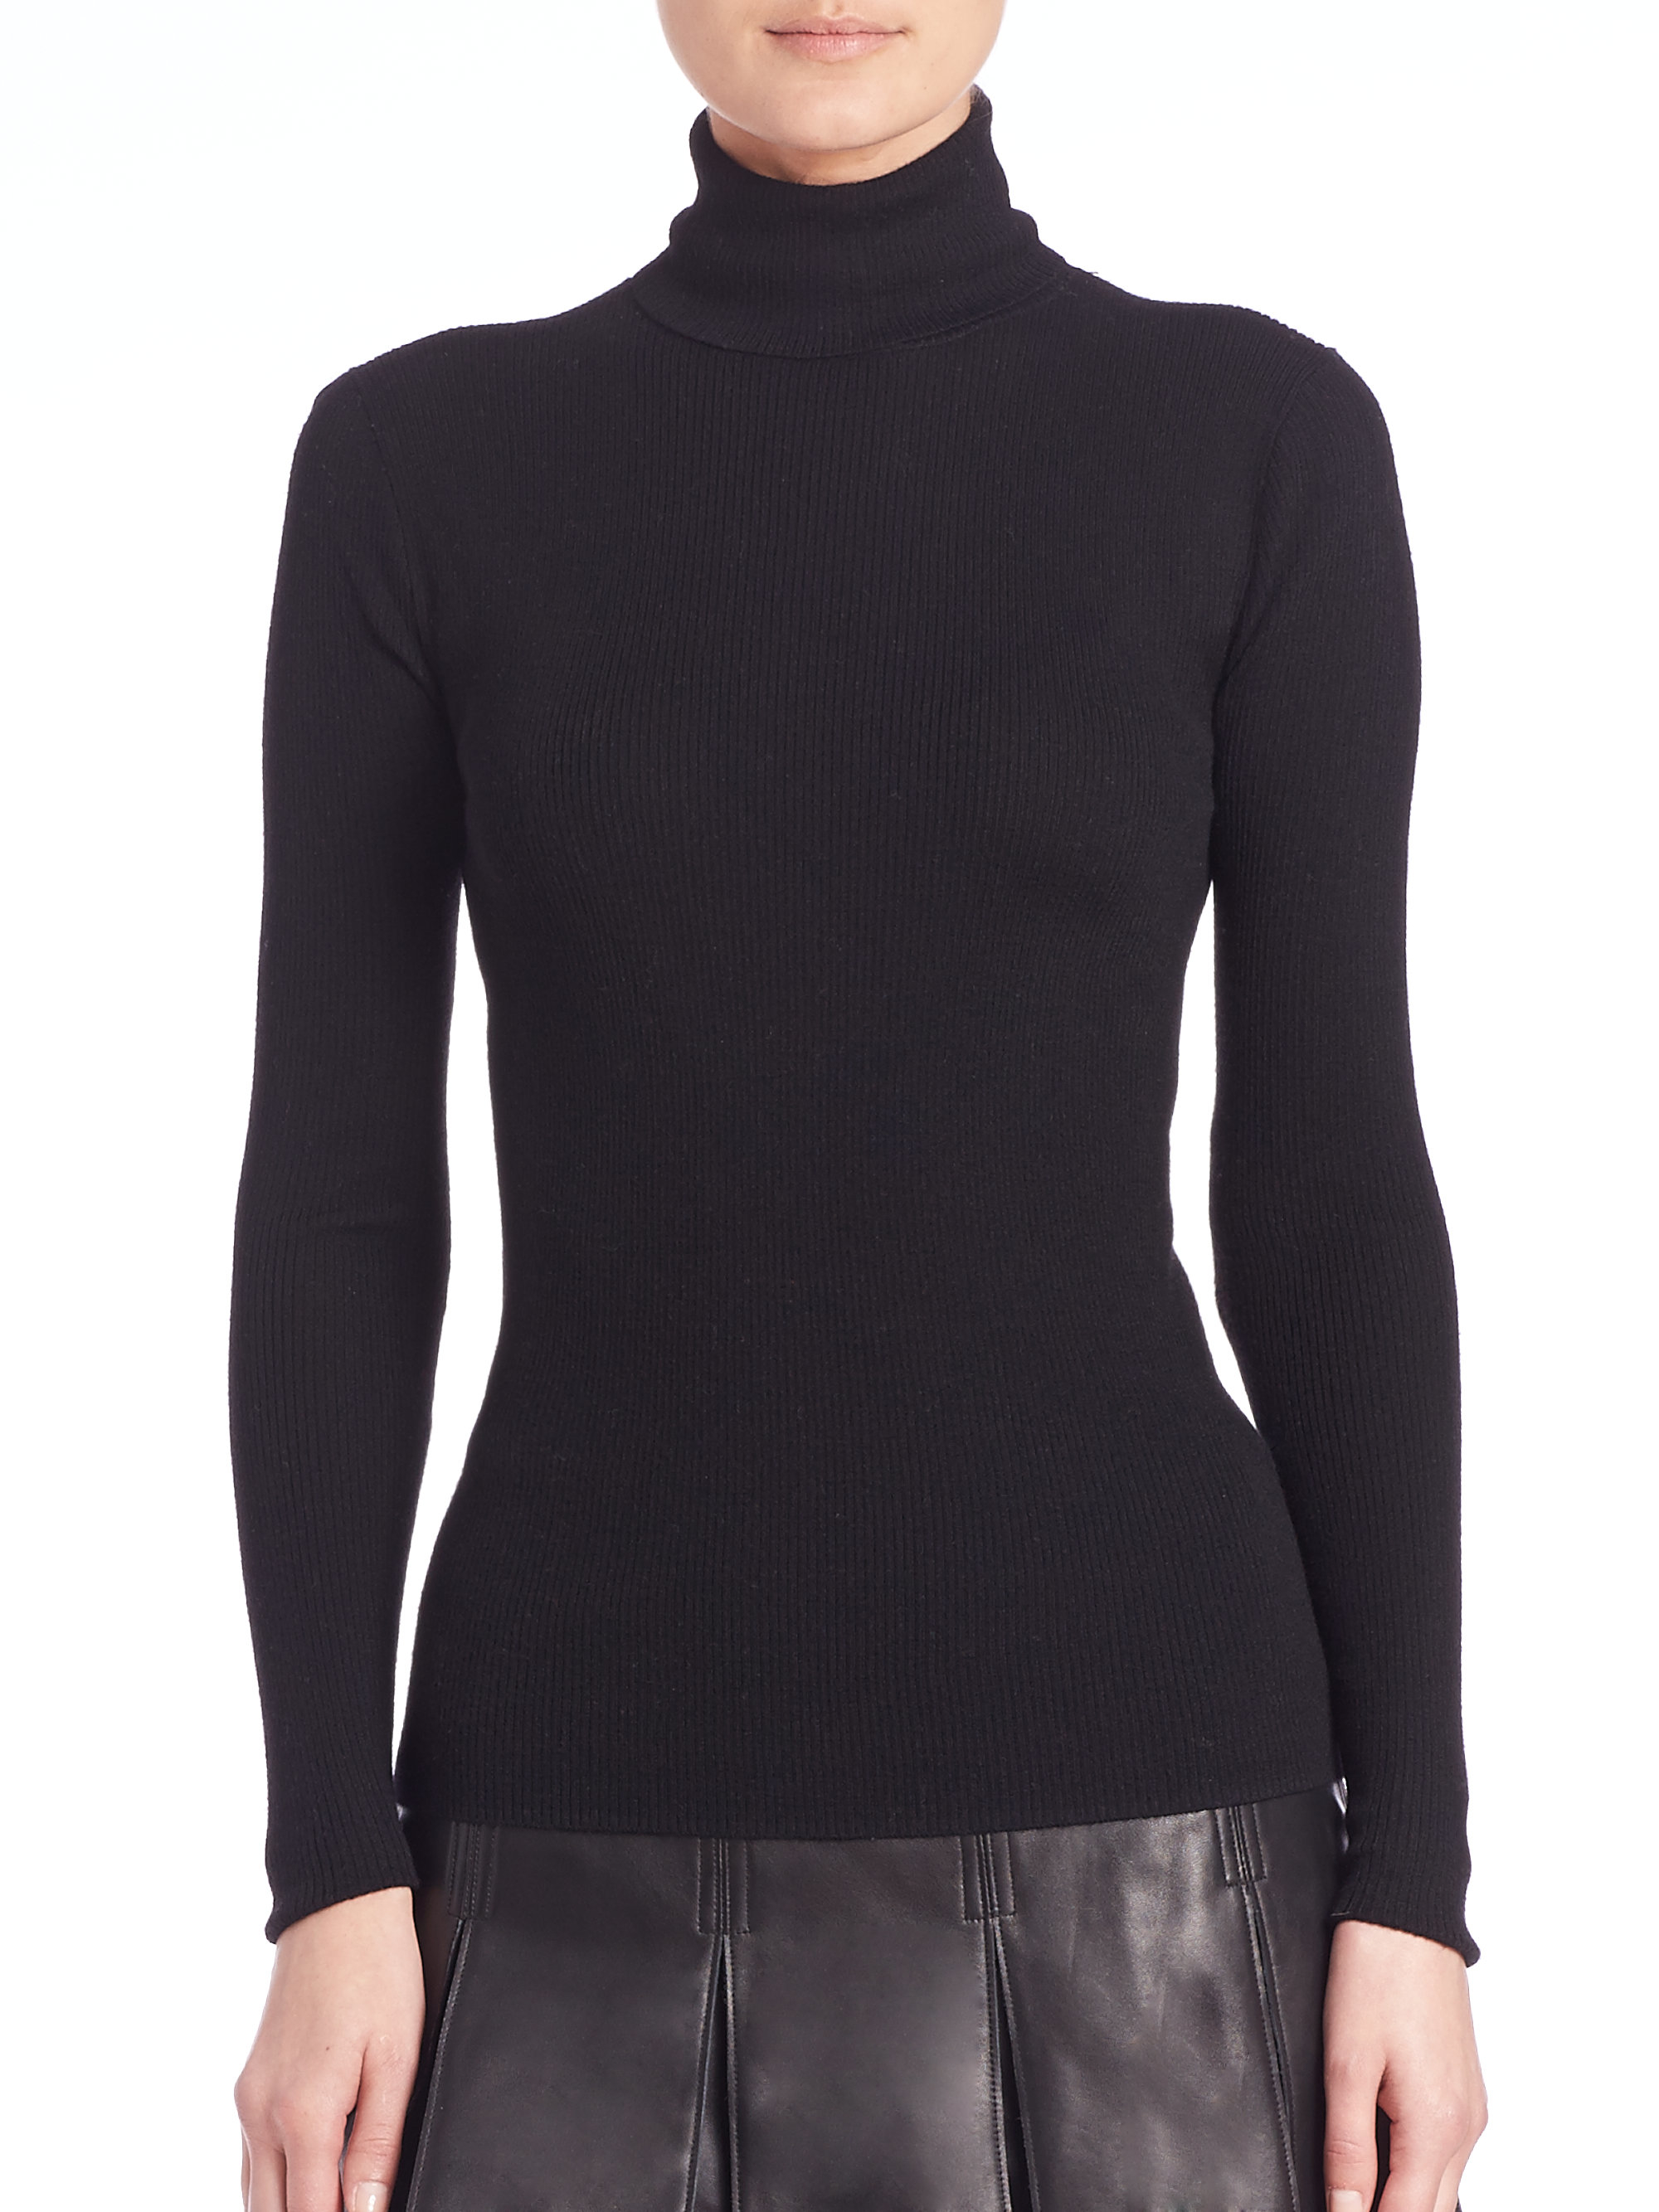 Polo ralph lauren Merino Wool Turtleneck Sweater in Black | Lyst